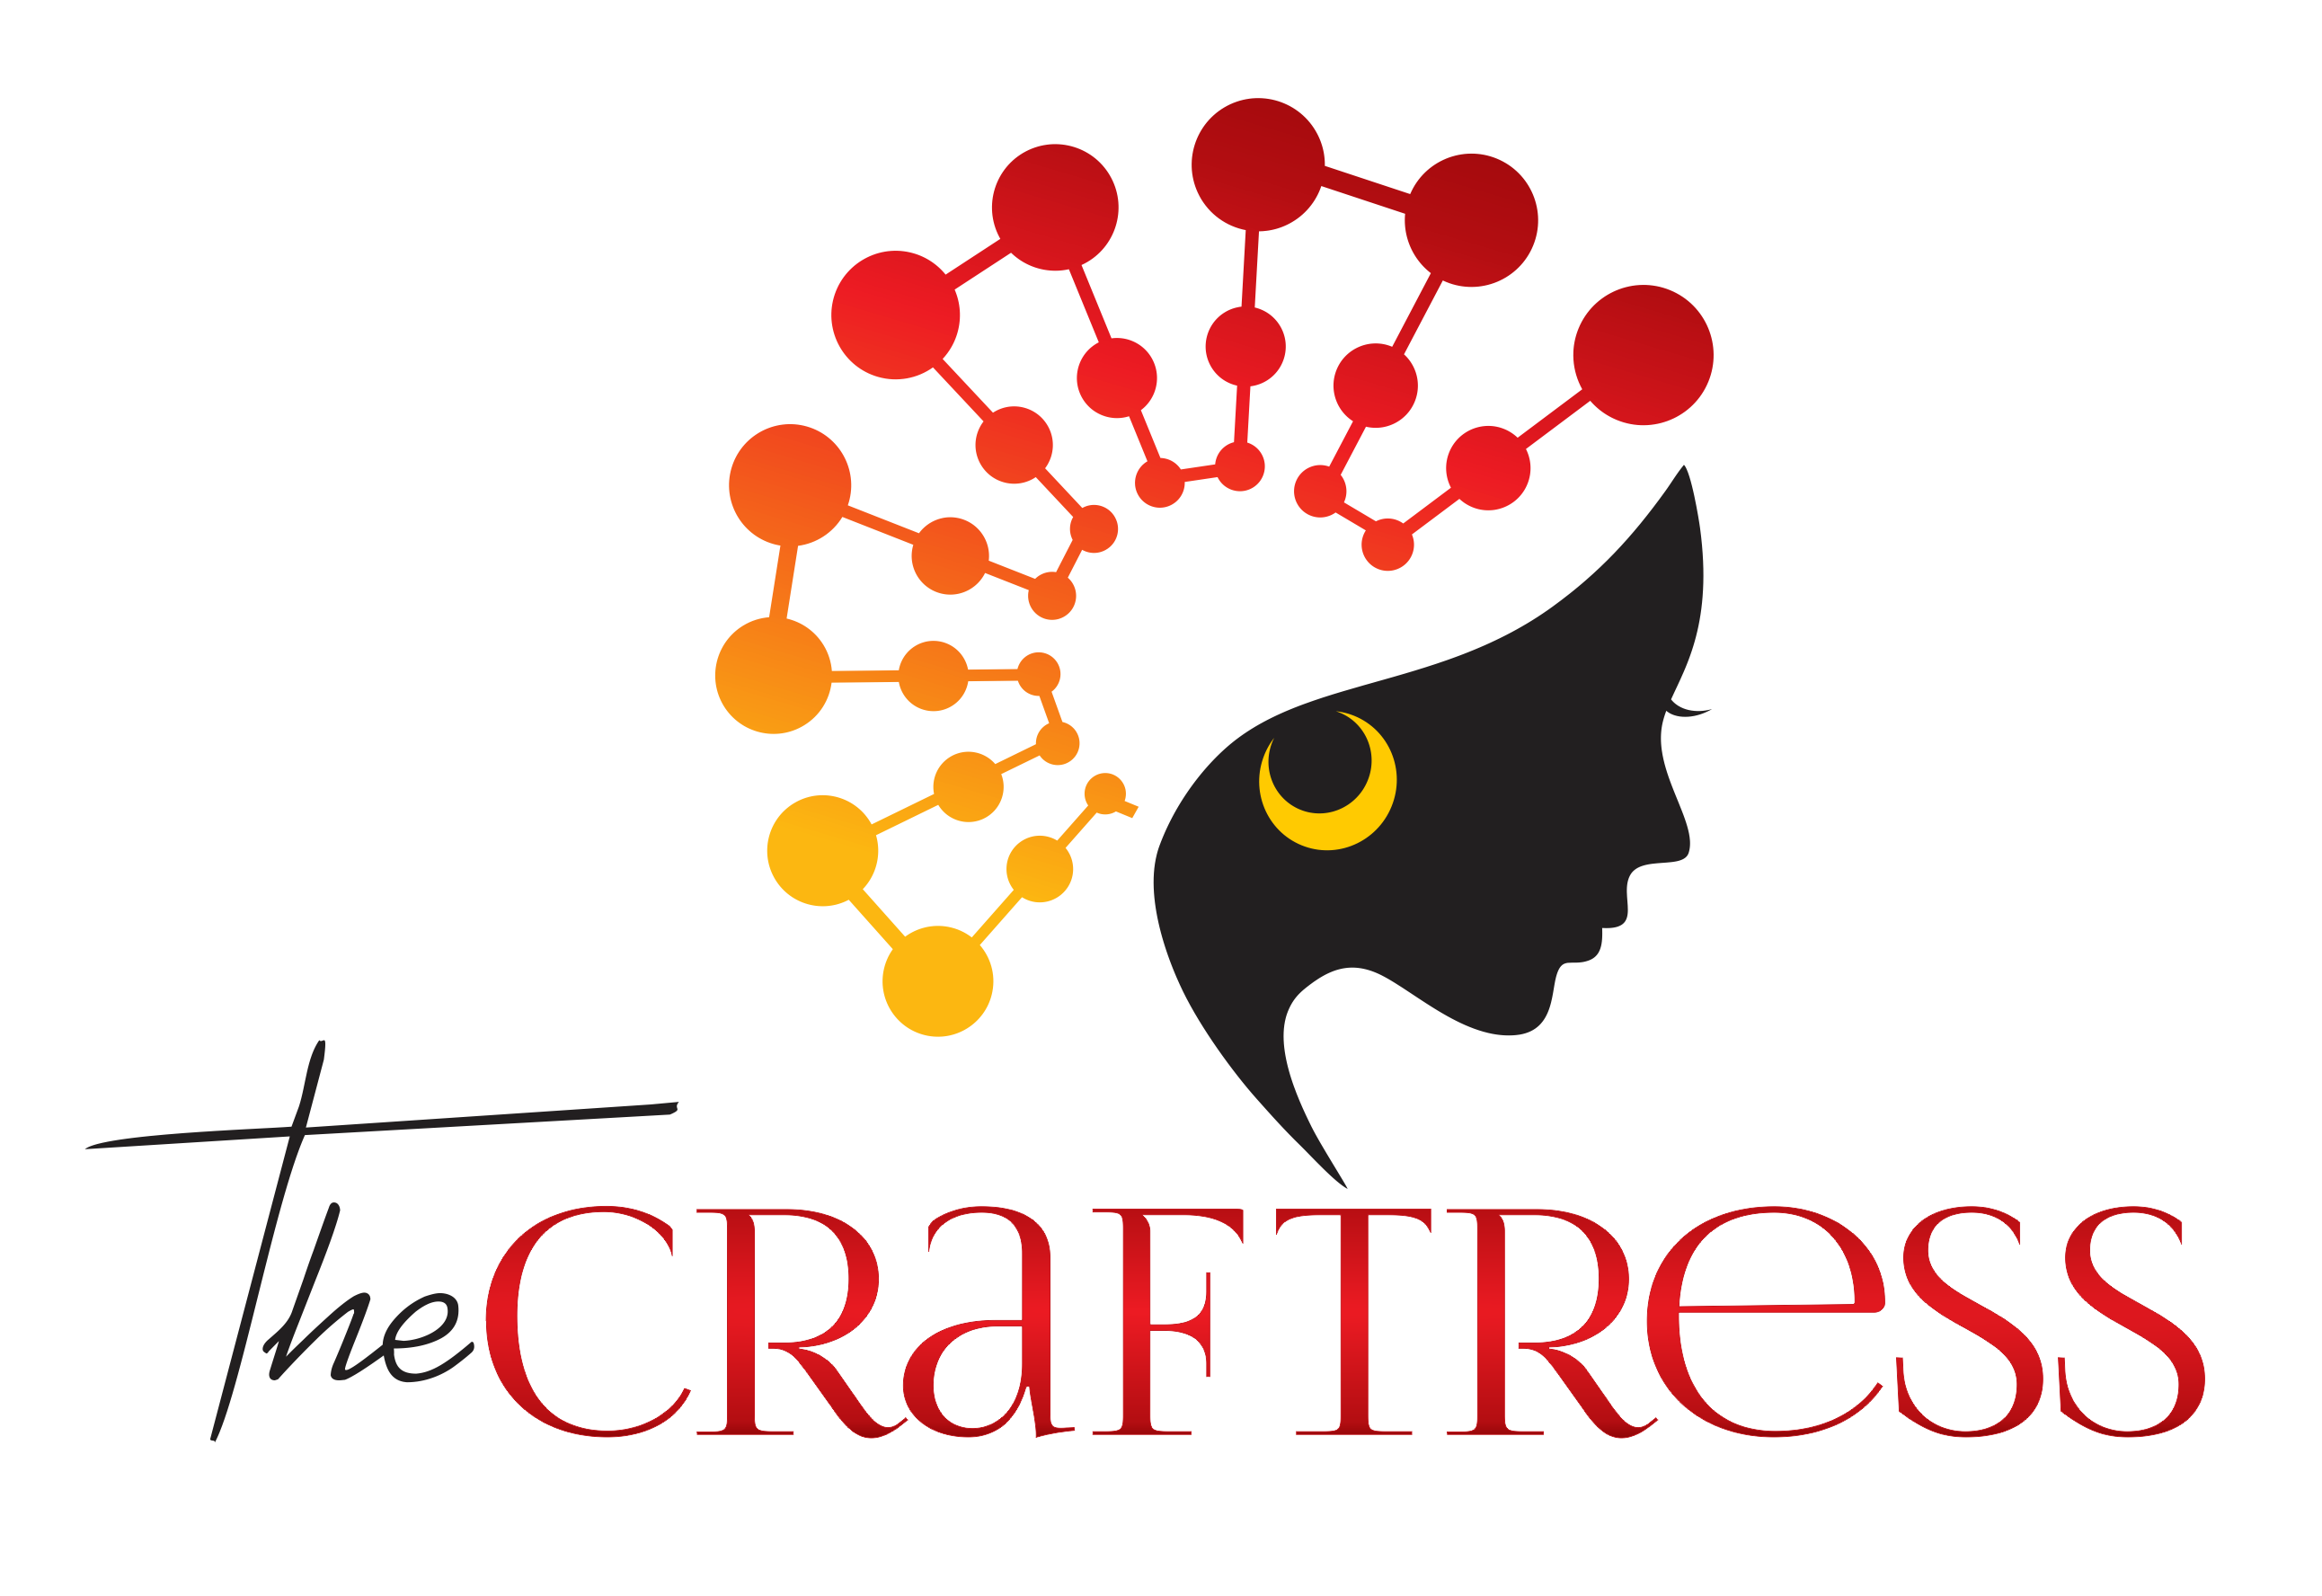 The Craftress